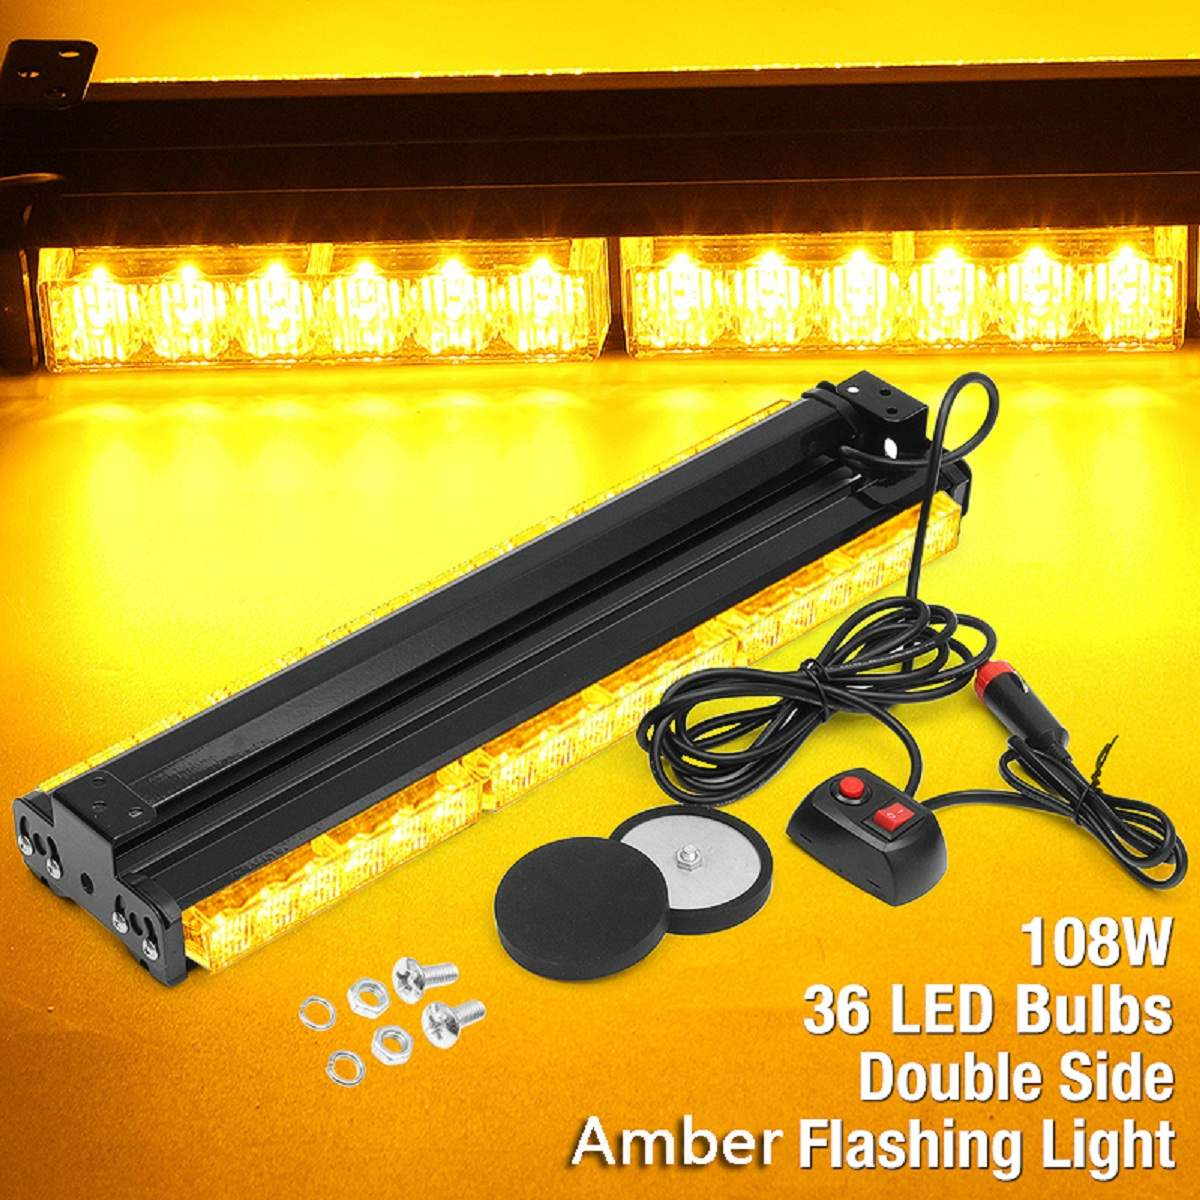 12V 108W 36LED Car Truck Flash Light Strobe Emergency Warning Caution Roof Lamp Auto Polices LED Bar Car Yellow Light Assembly12V 108W 36LED Car Truck Flash Light Strobe Emergency Warning Caution Roof Lamp Auto Polices LED Bar Car Yellow Light Assembly